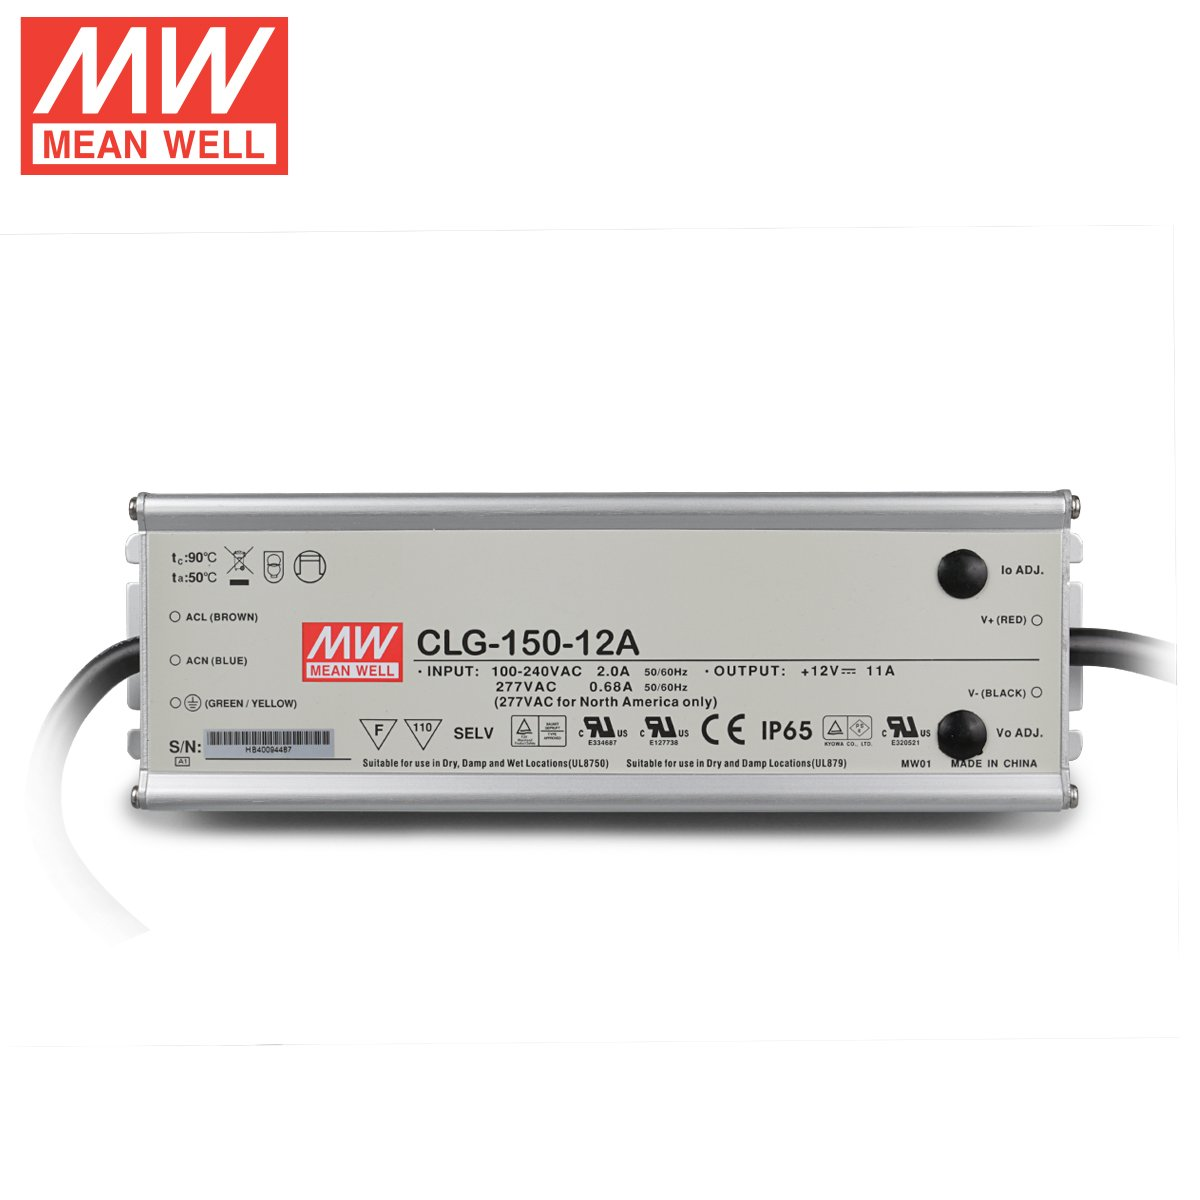 [] official Taiwan meanwell waterproof switch power CLG-150-12A LED 150W 12V 11A